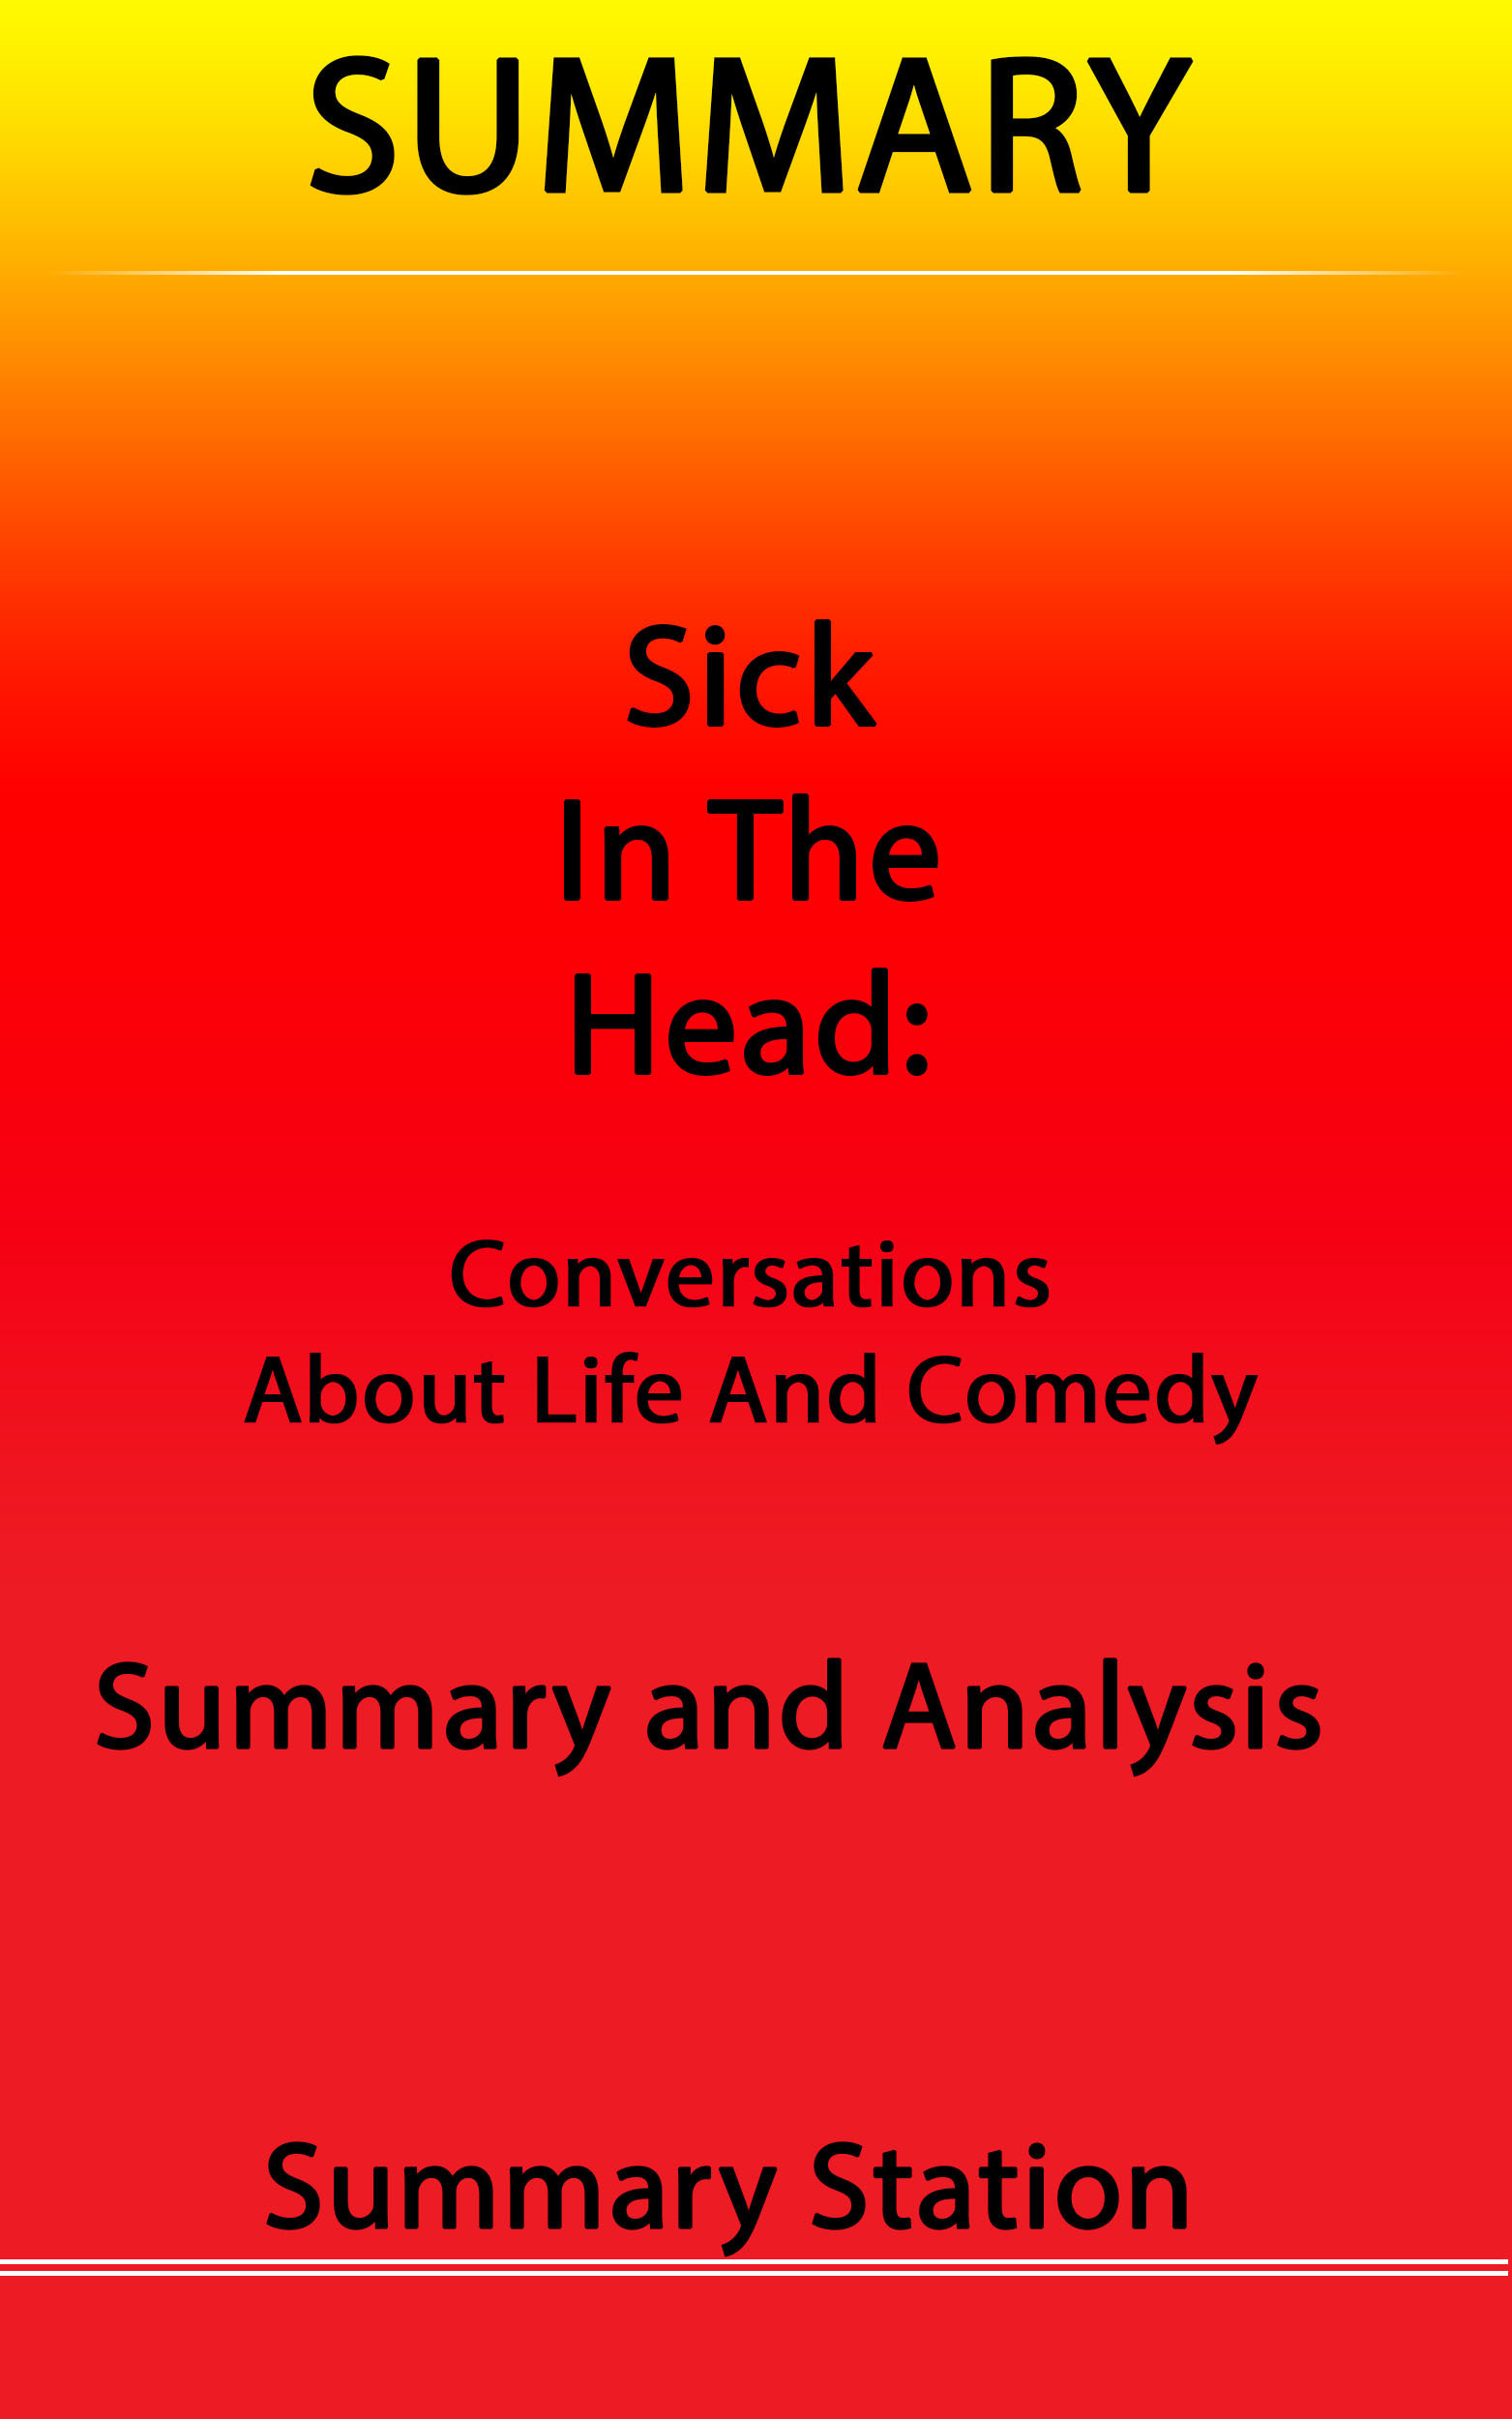 Sick in the Head: Conversations about Life and Comedy | Summary